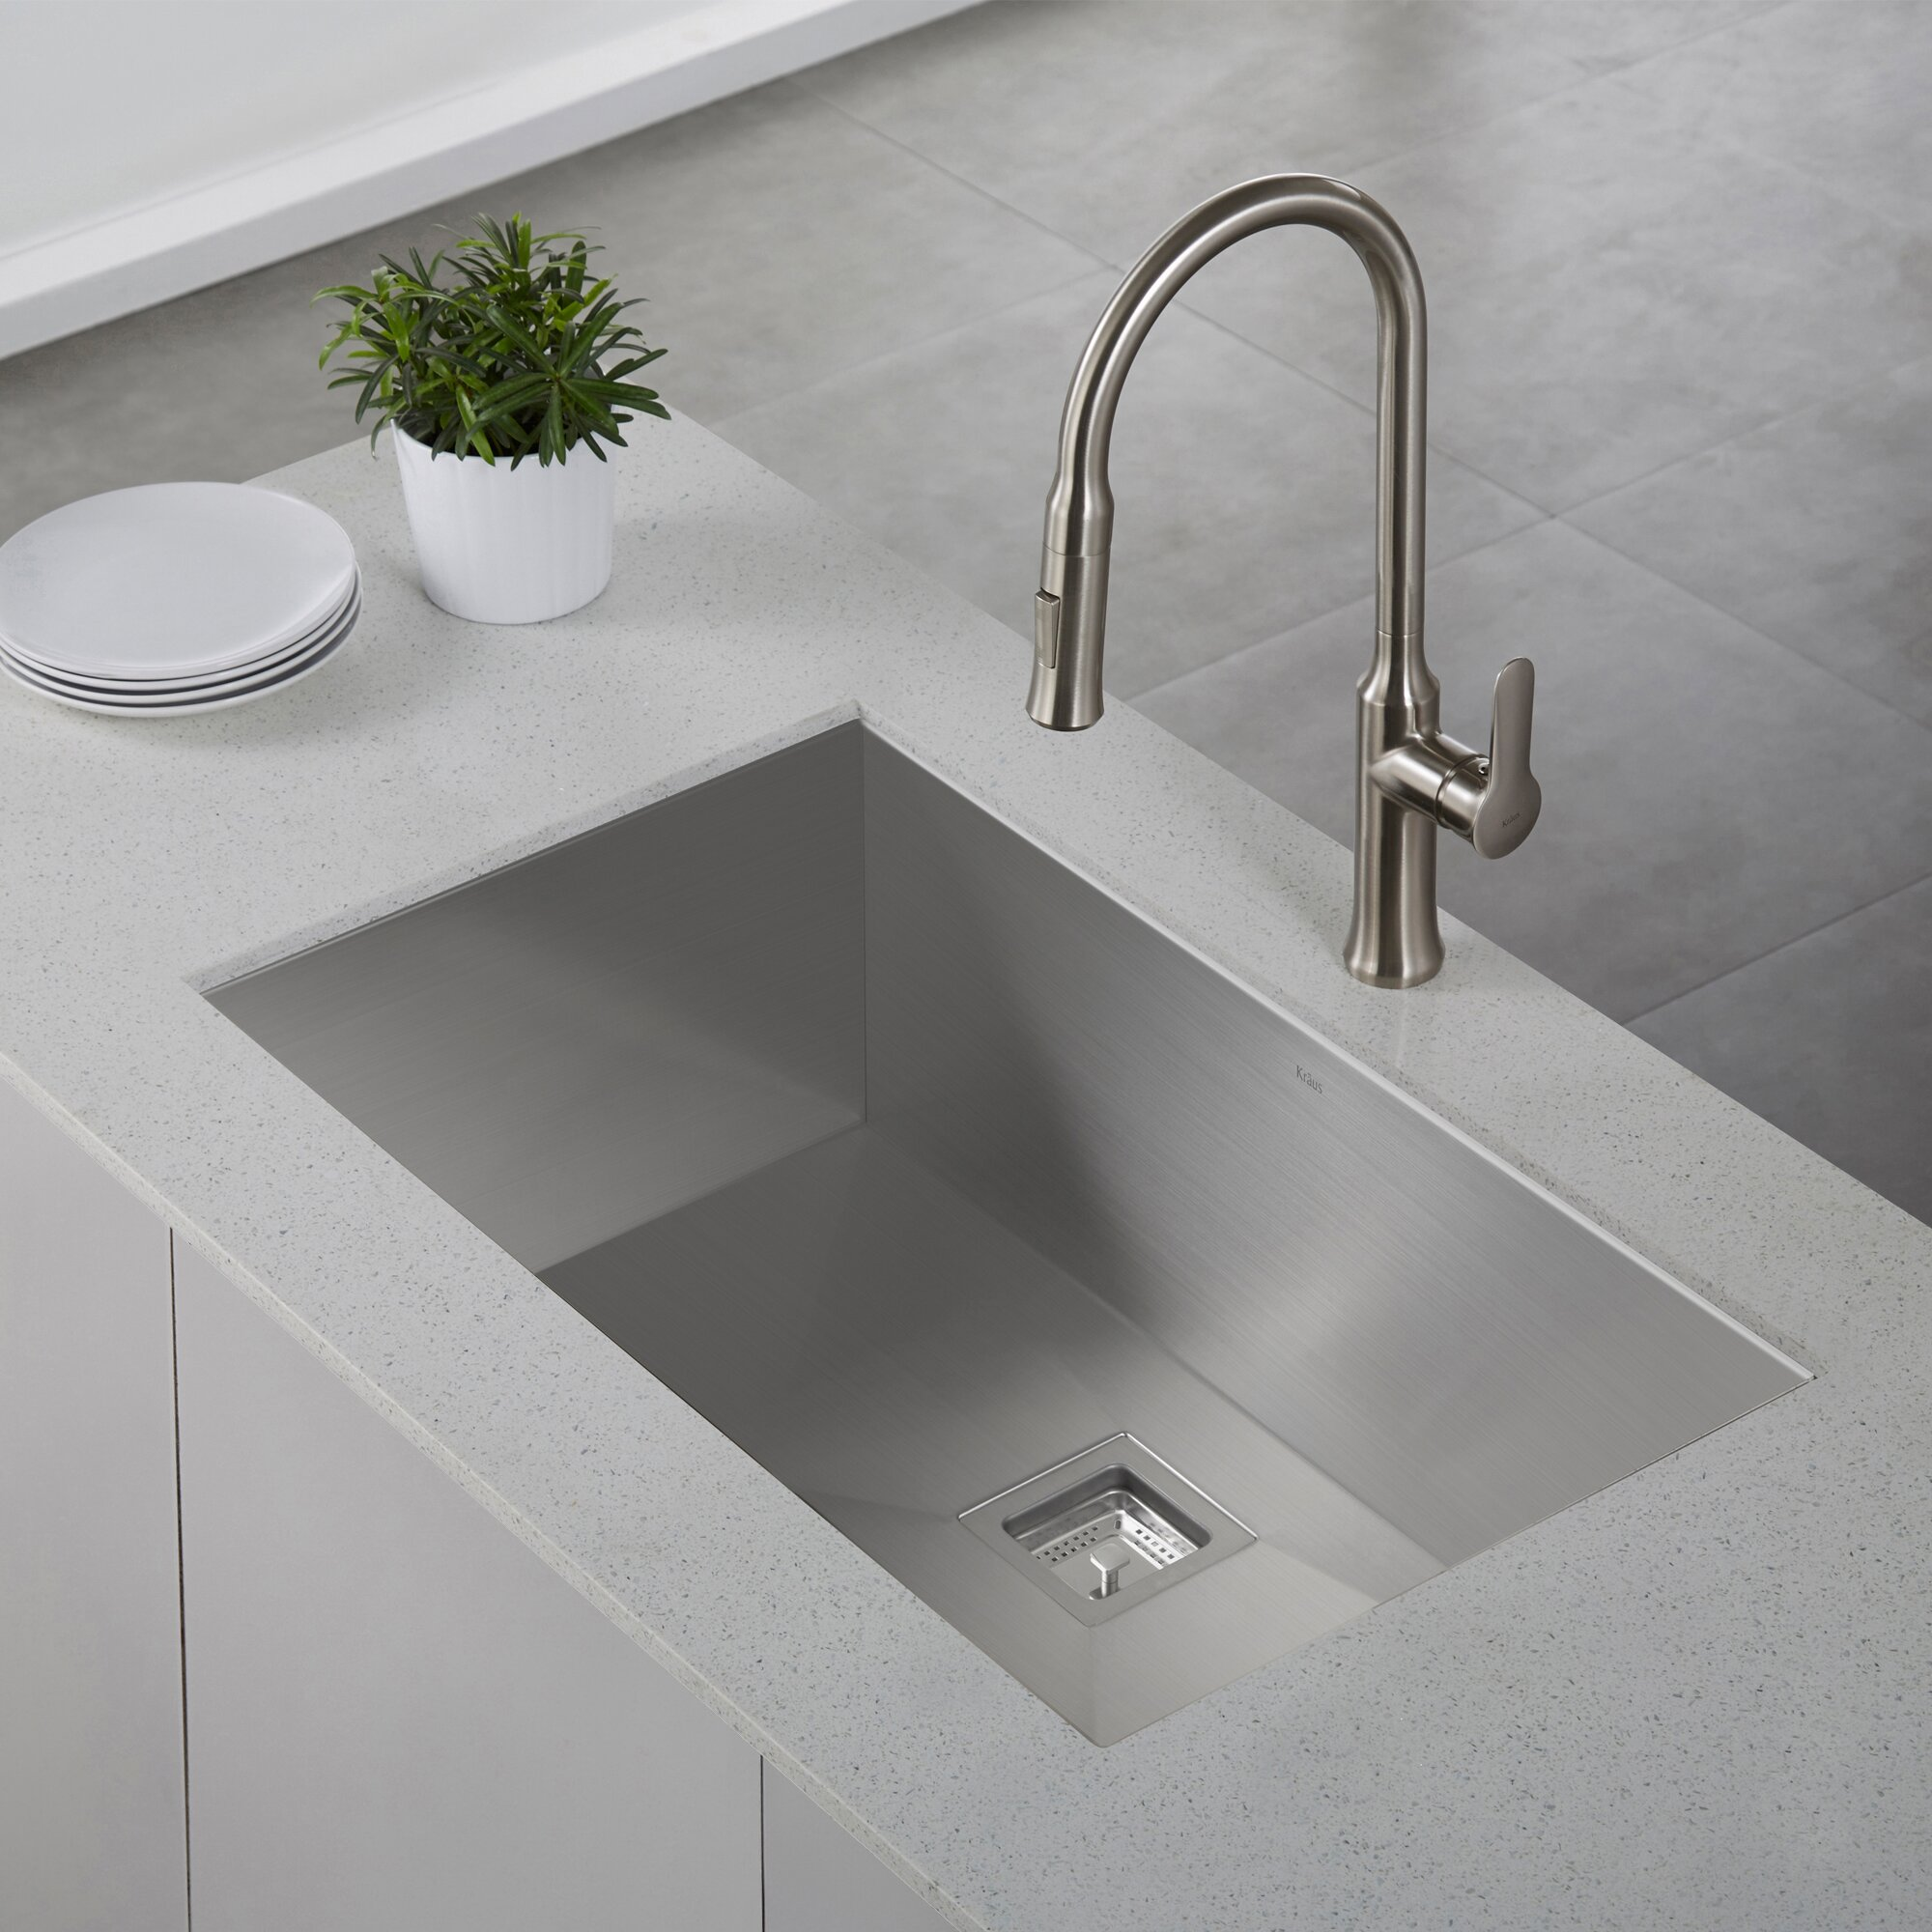 Zero Radius Kitchen Sink